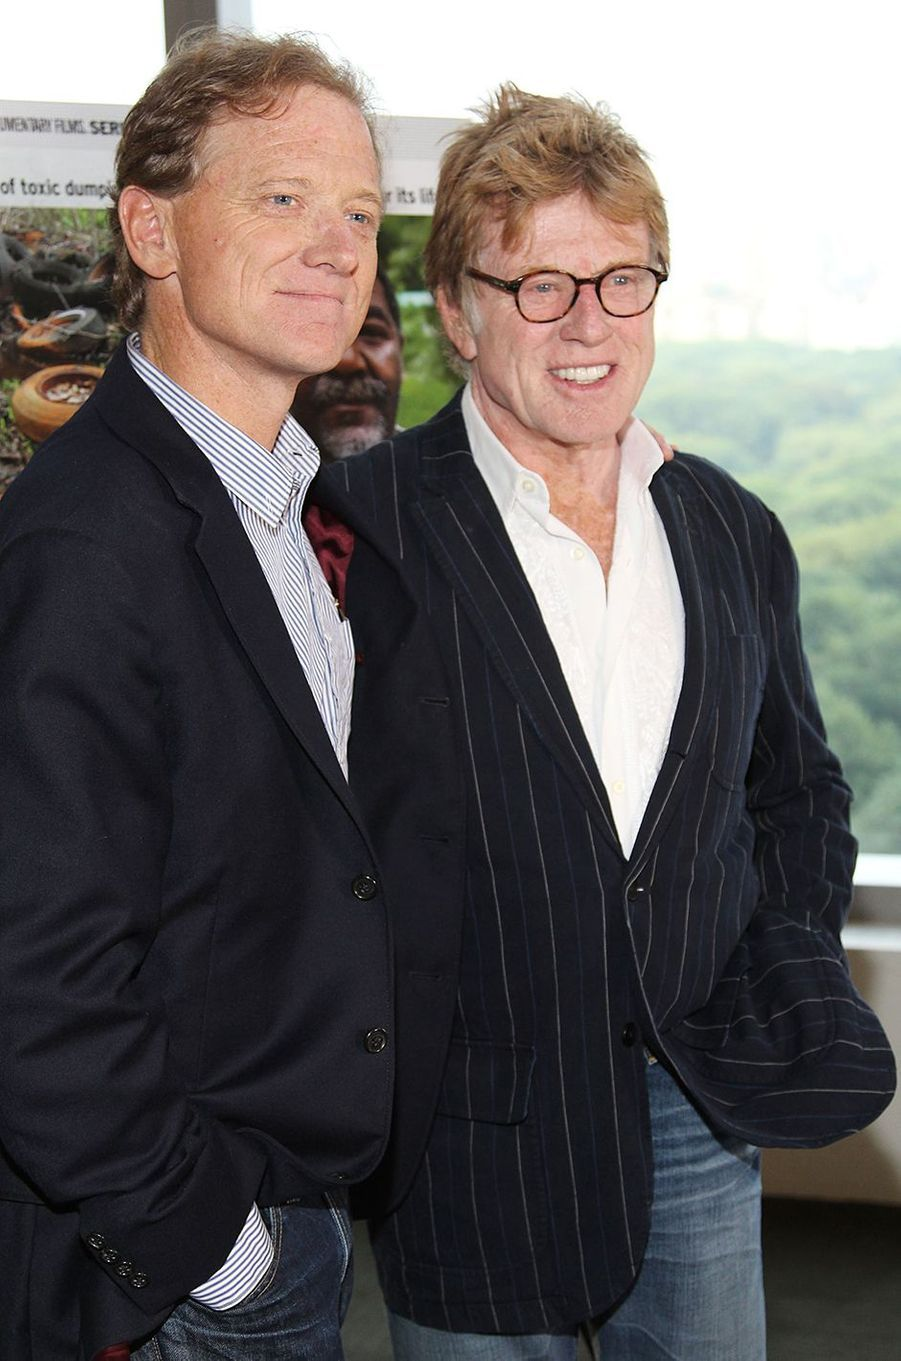 James et Robert Redford lors de la projection du documentaire «Mann V. Ford» à New York en 2011